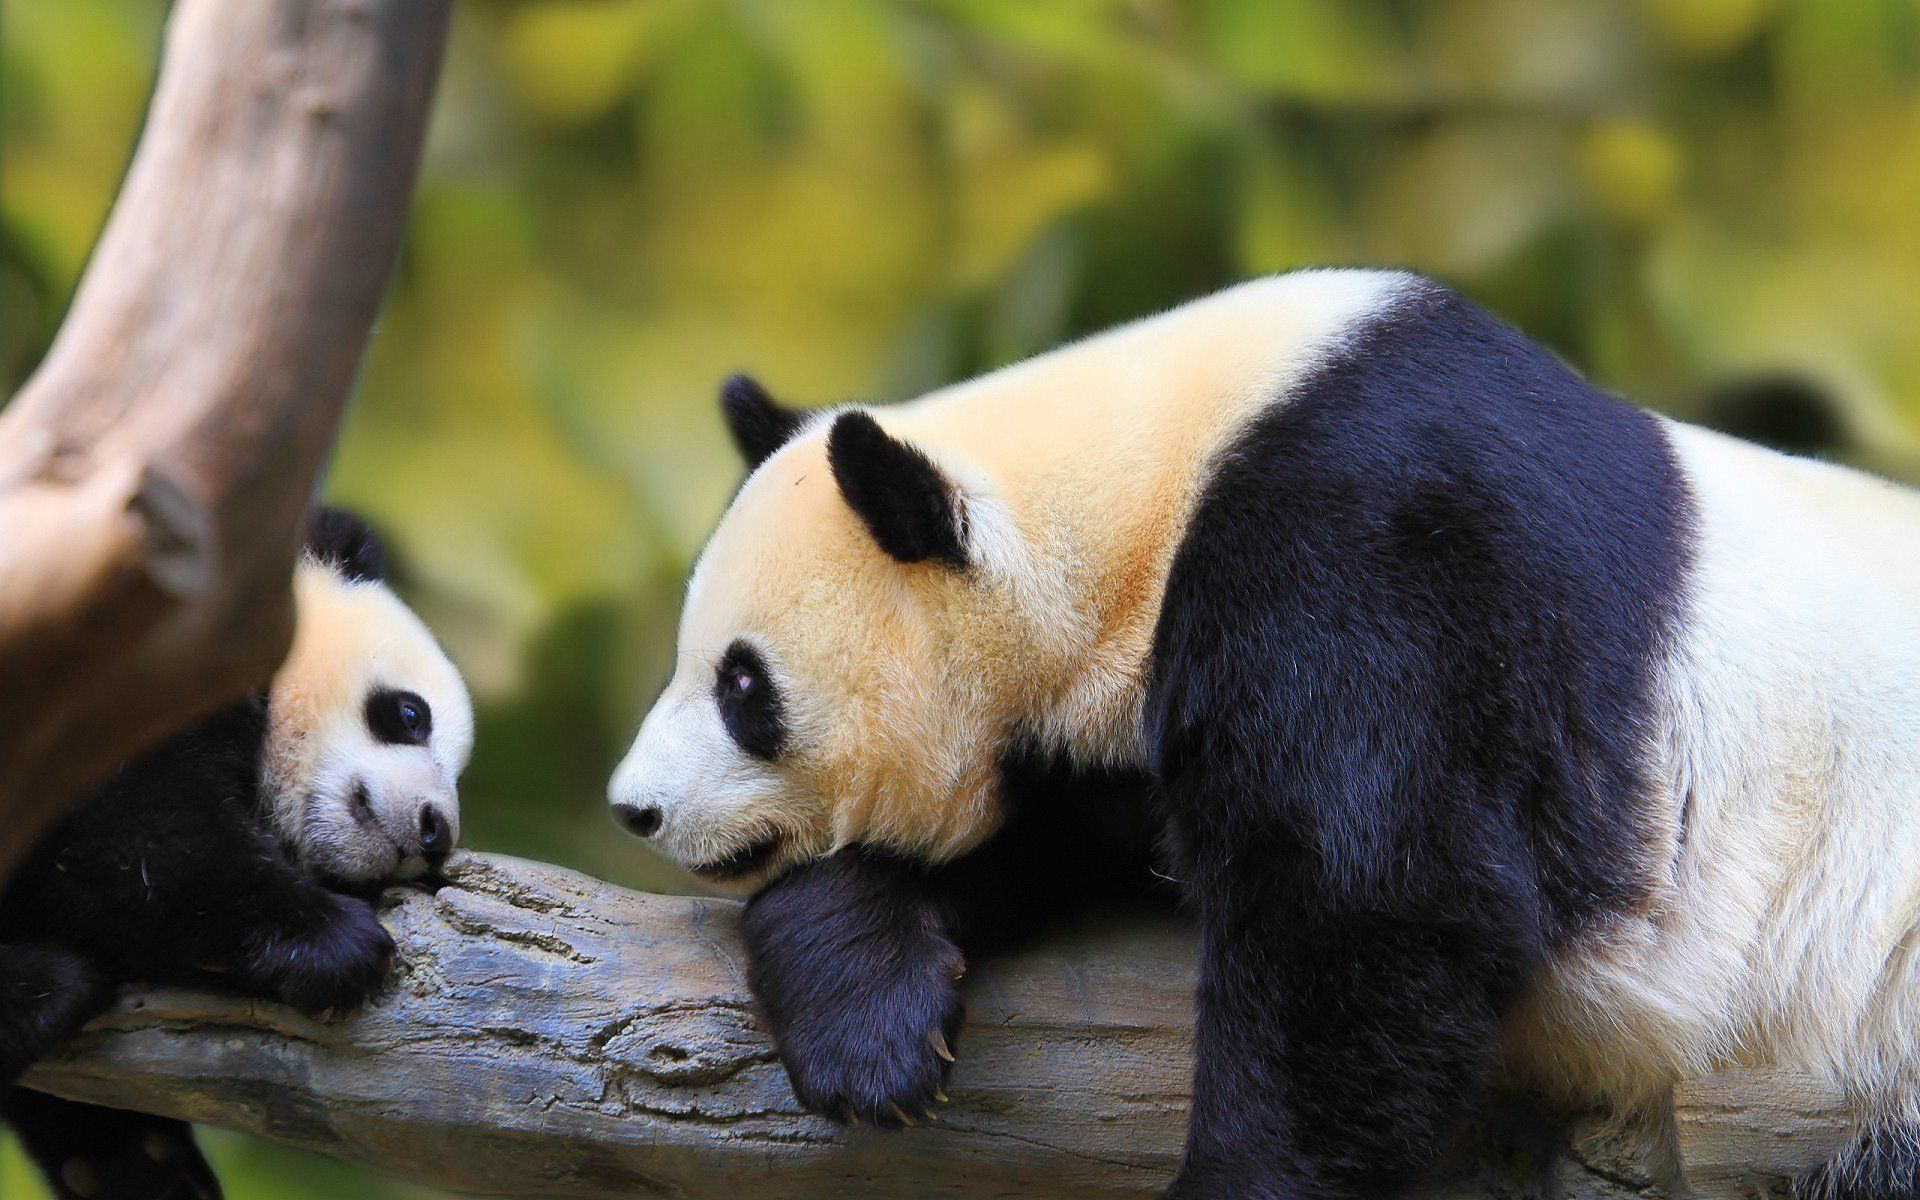 Nature Animal Bird National Geographic Panda Forest Baby Green Hd Wallpapers Wallpaper 1920x1200 237068 W Baby Panda Pictures Panda Bear Panda Wallpapers